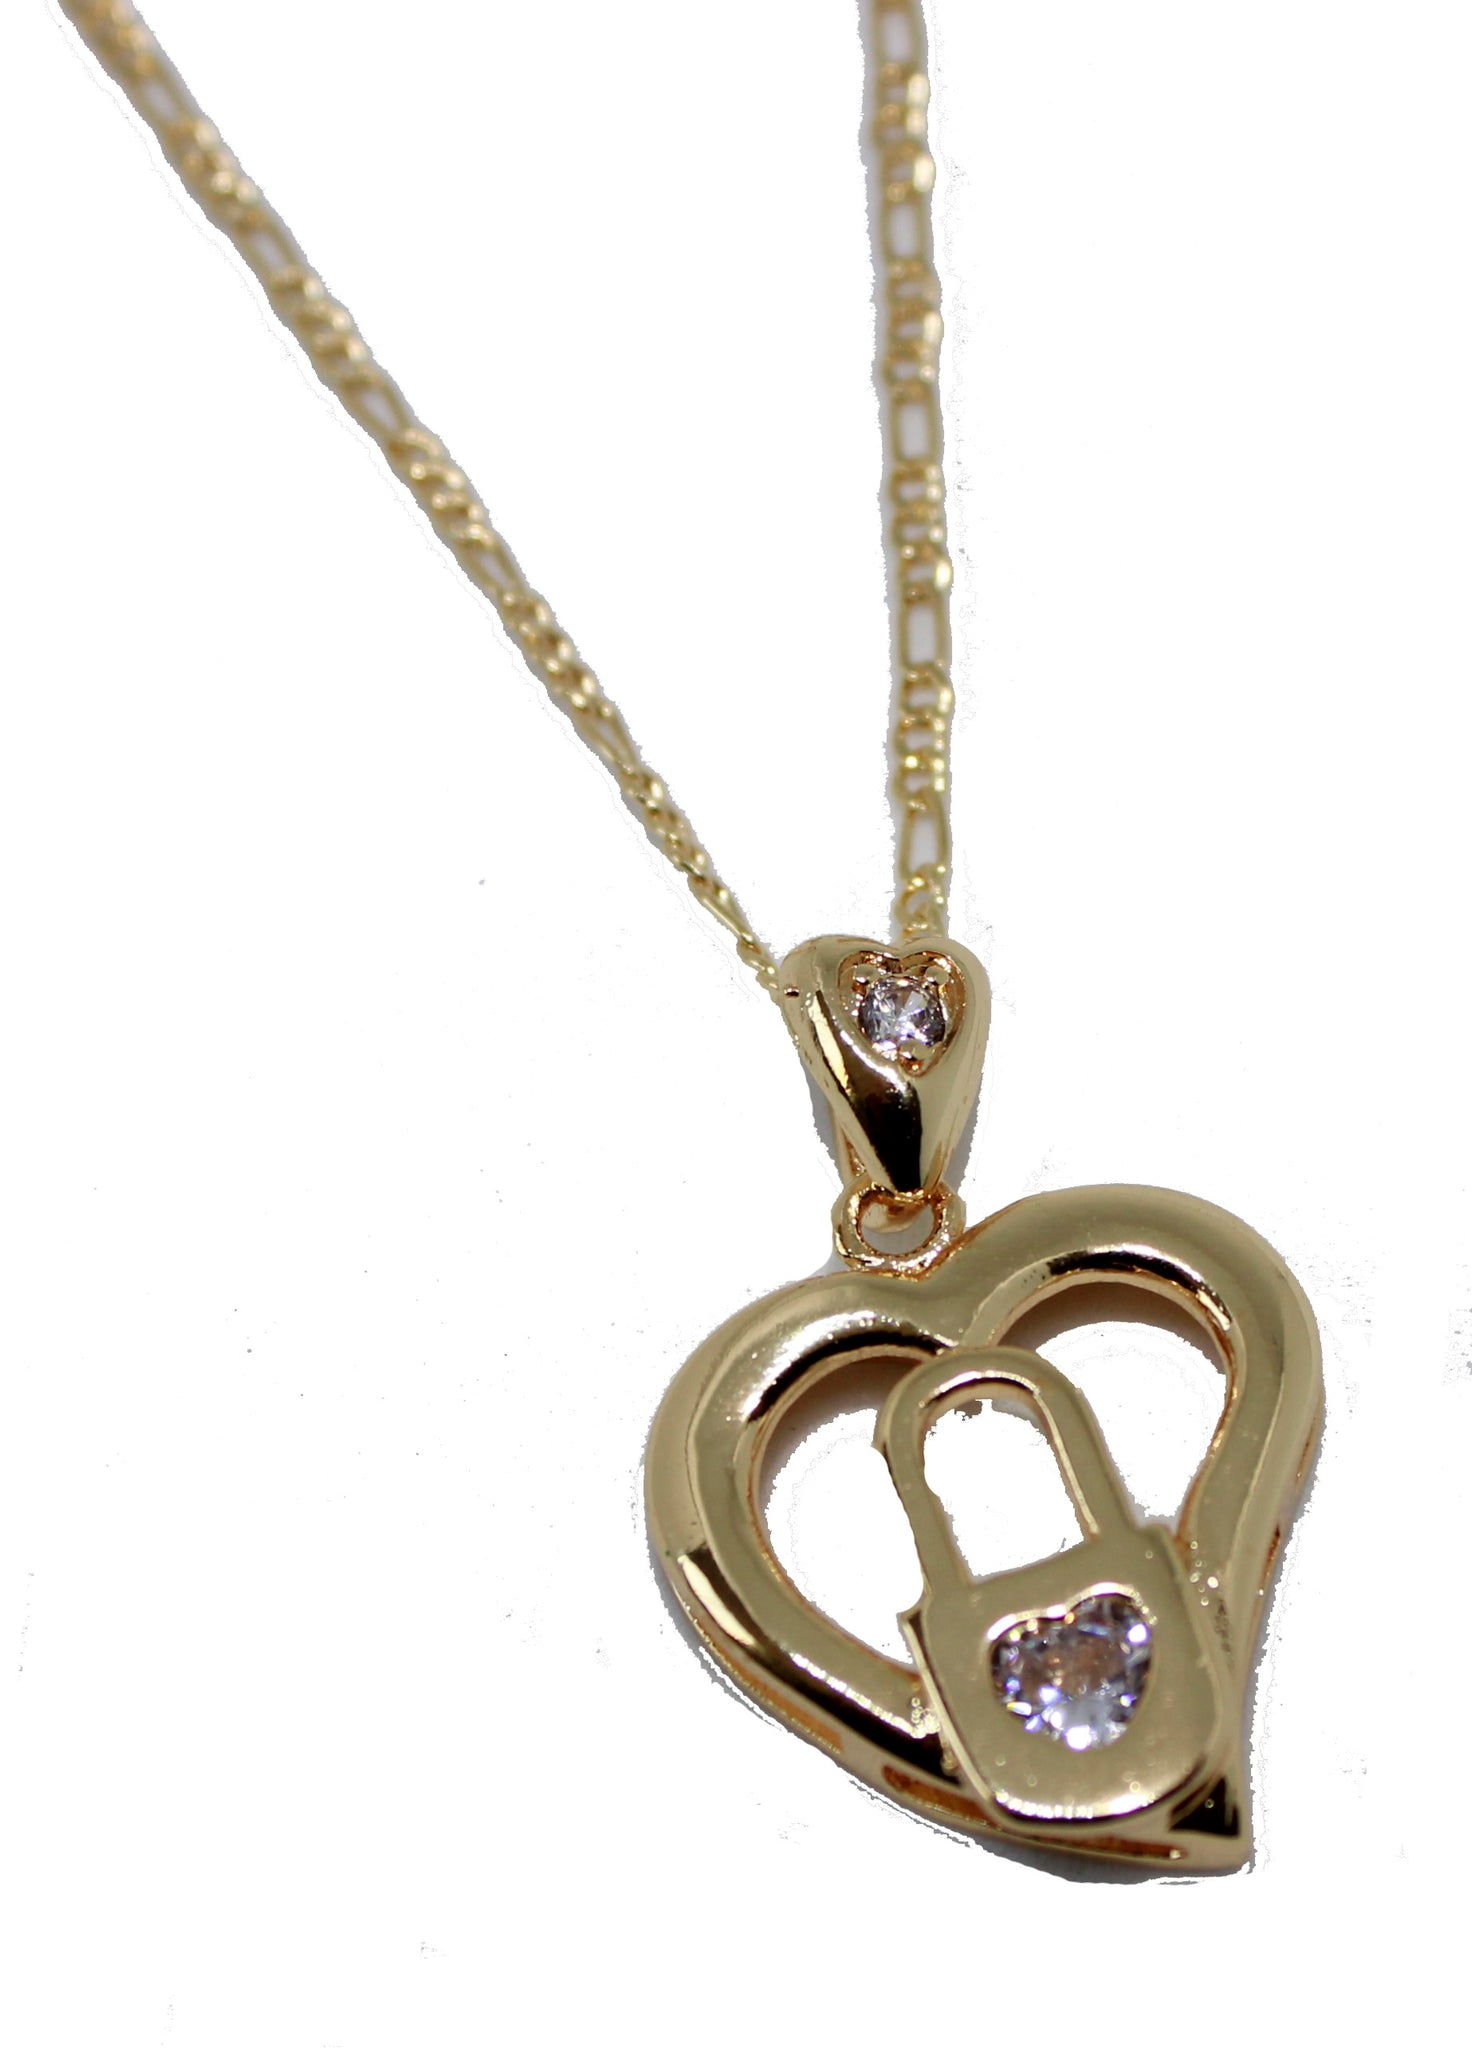 Heart lock pendant 18k gold plated with 20 inch chain necklace heart lock pendant 18k gold plated with 20 inch chain necklace heart and lock necklace aloadofball Gallery